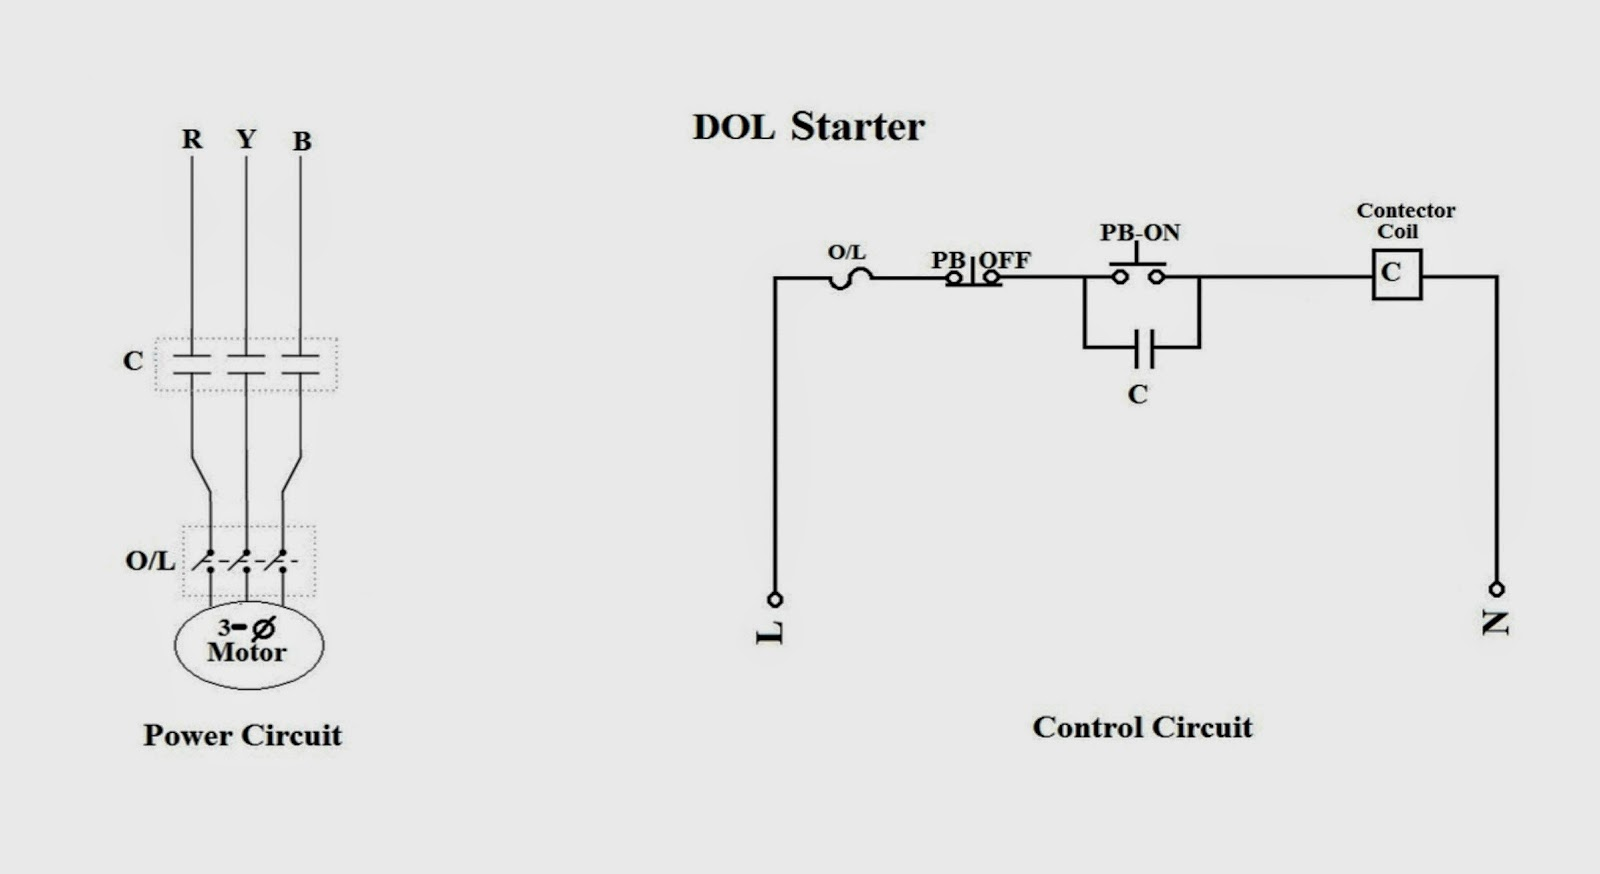 Control Wiring Diagram Of Dol Starter 48 Volt Club Car Training Report On Bokaro Steel Plant Common Electrical